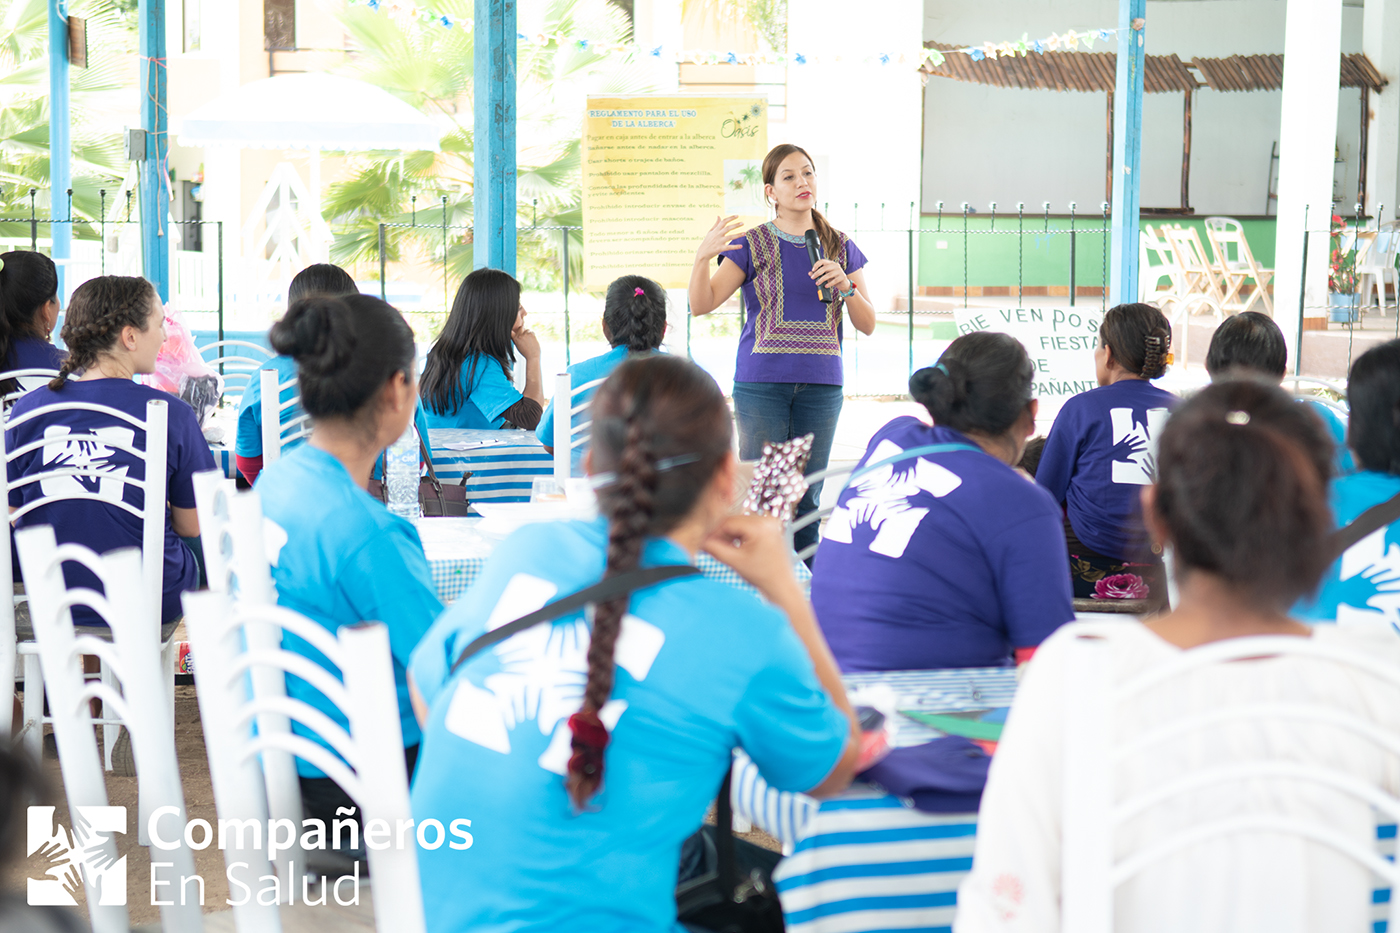 Photo: Dr. Jimena Maza, Director of Primary Care, addresses Compañeros En Salud's team of  Acompañantes  (community health workers) during a celebration in their honor.